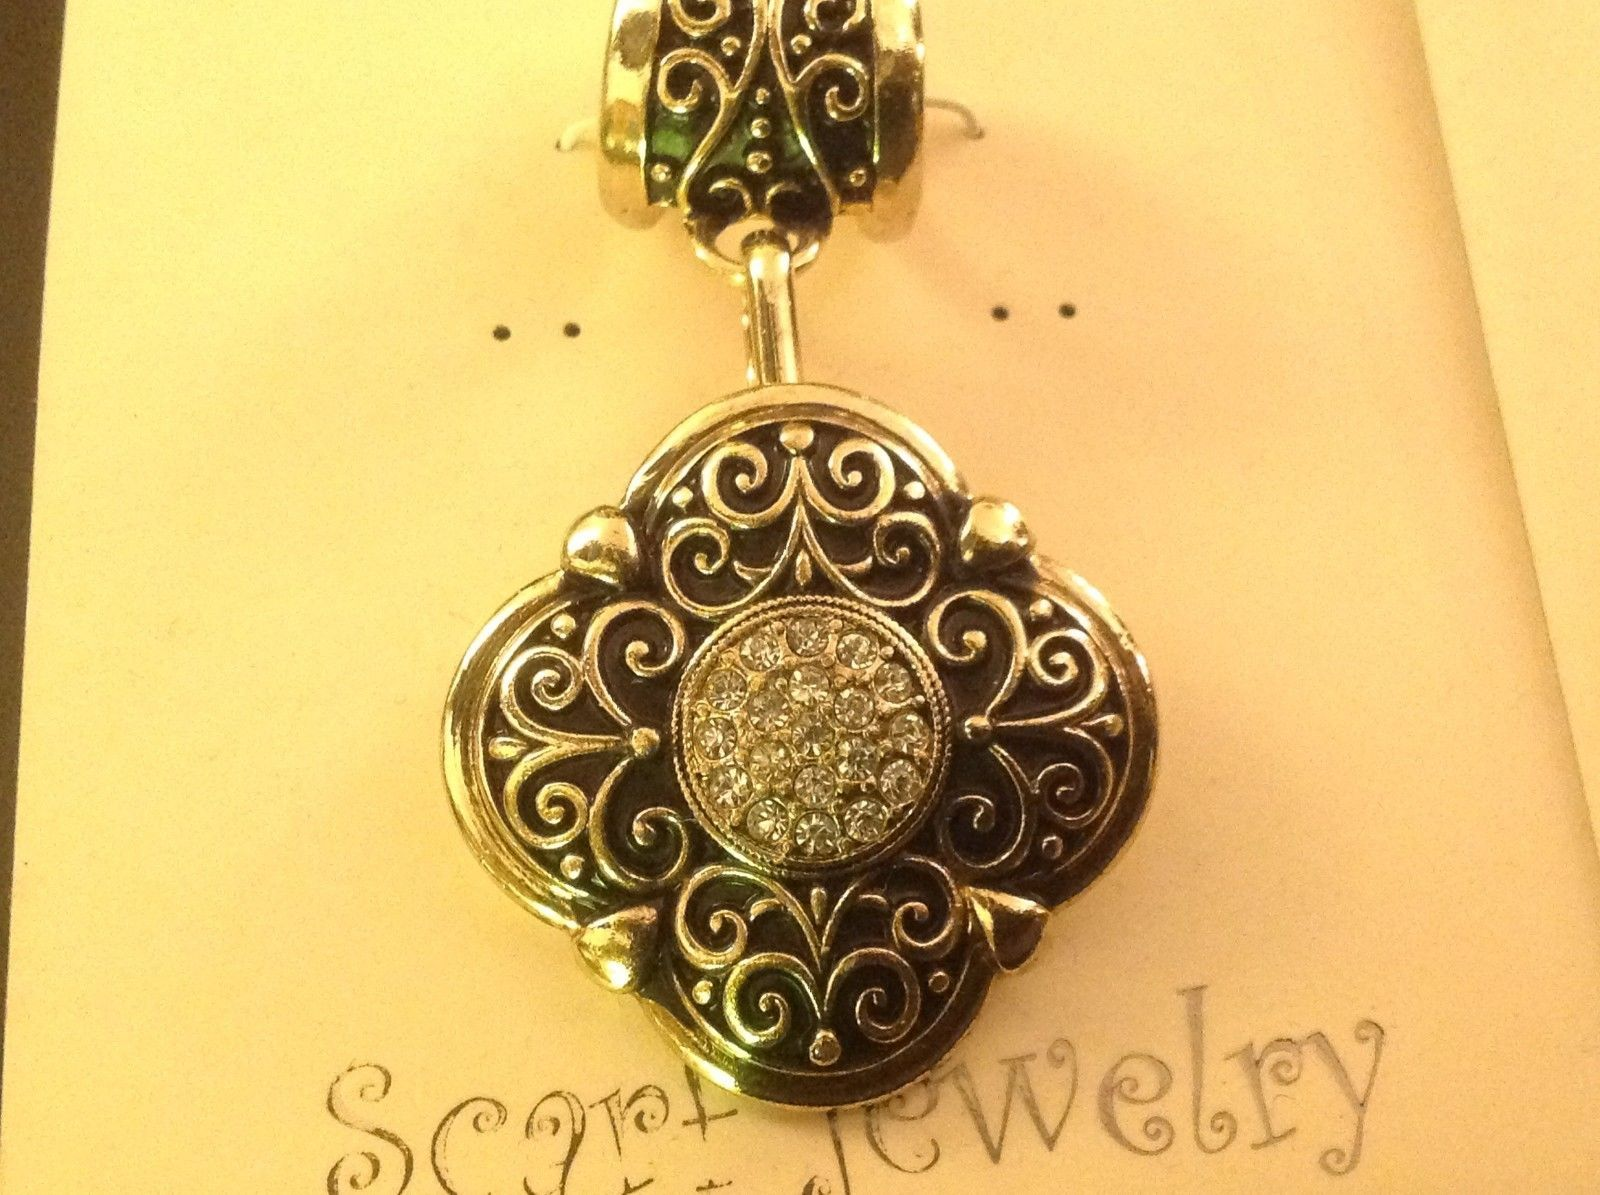 Scarf pendant gold tone enamel embossed relief and crystal studded oval